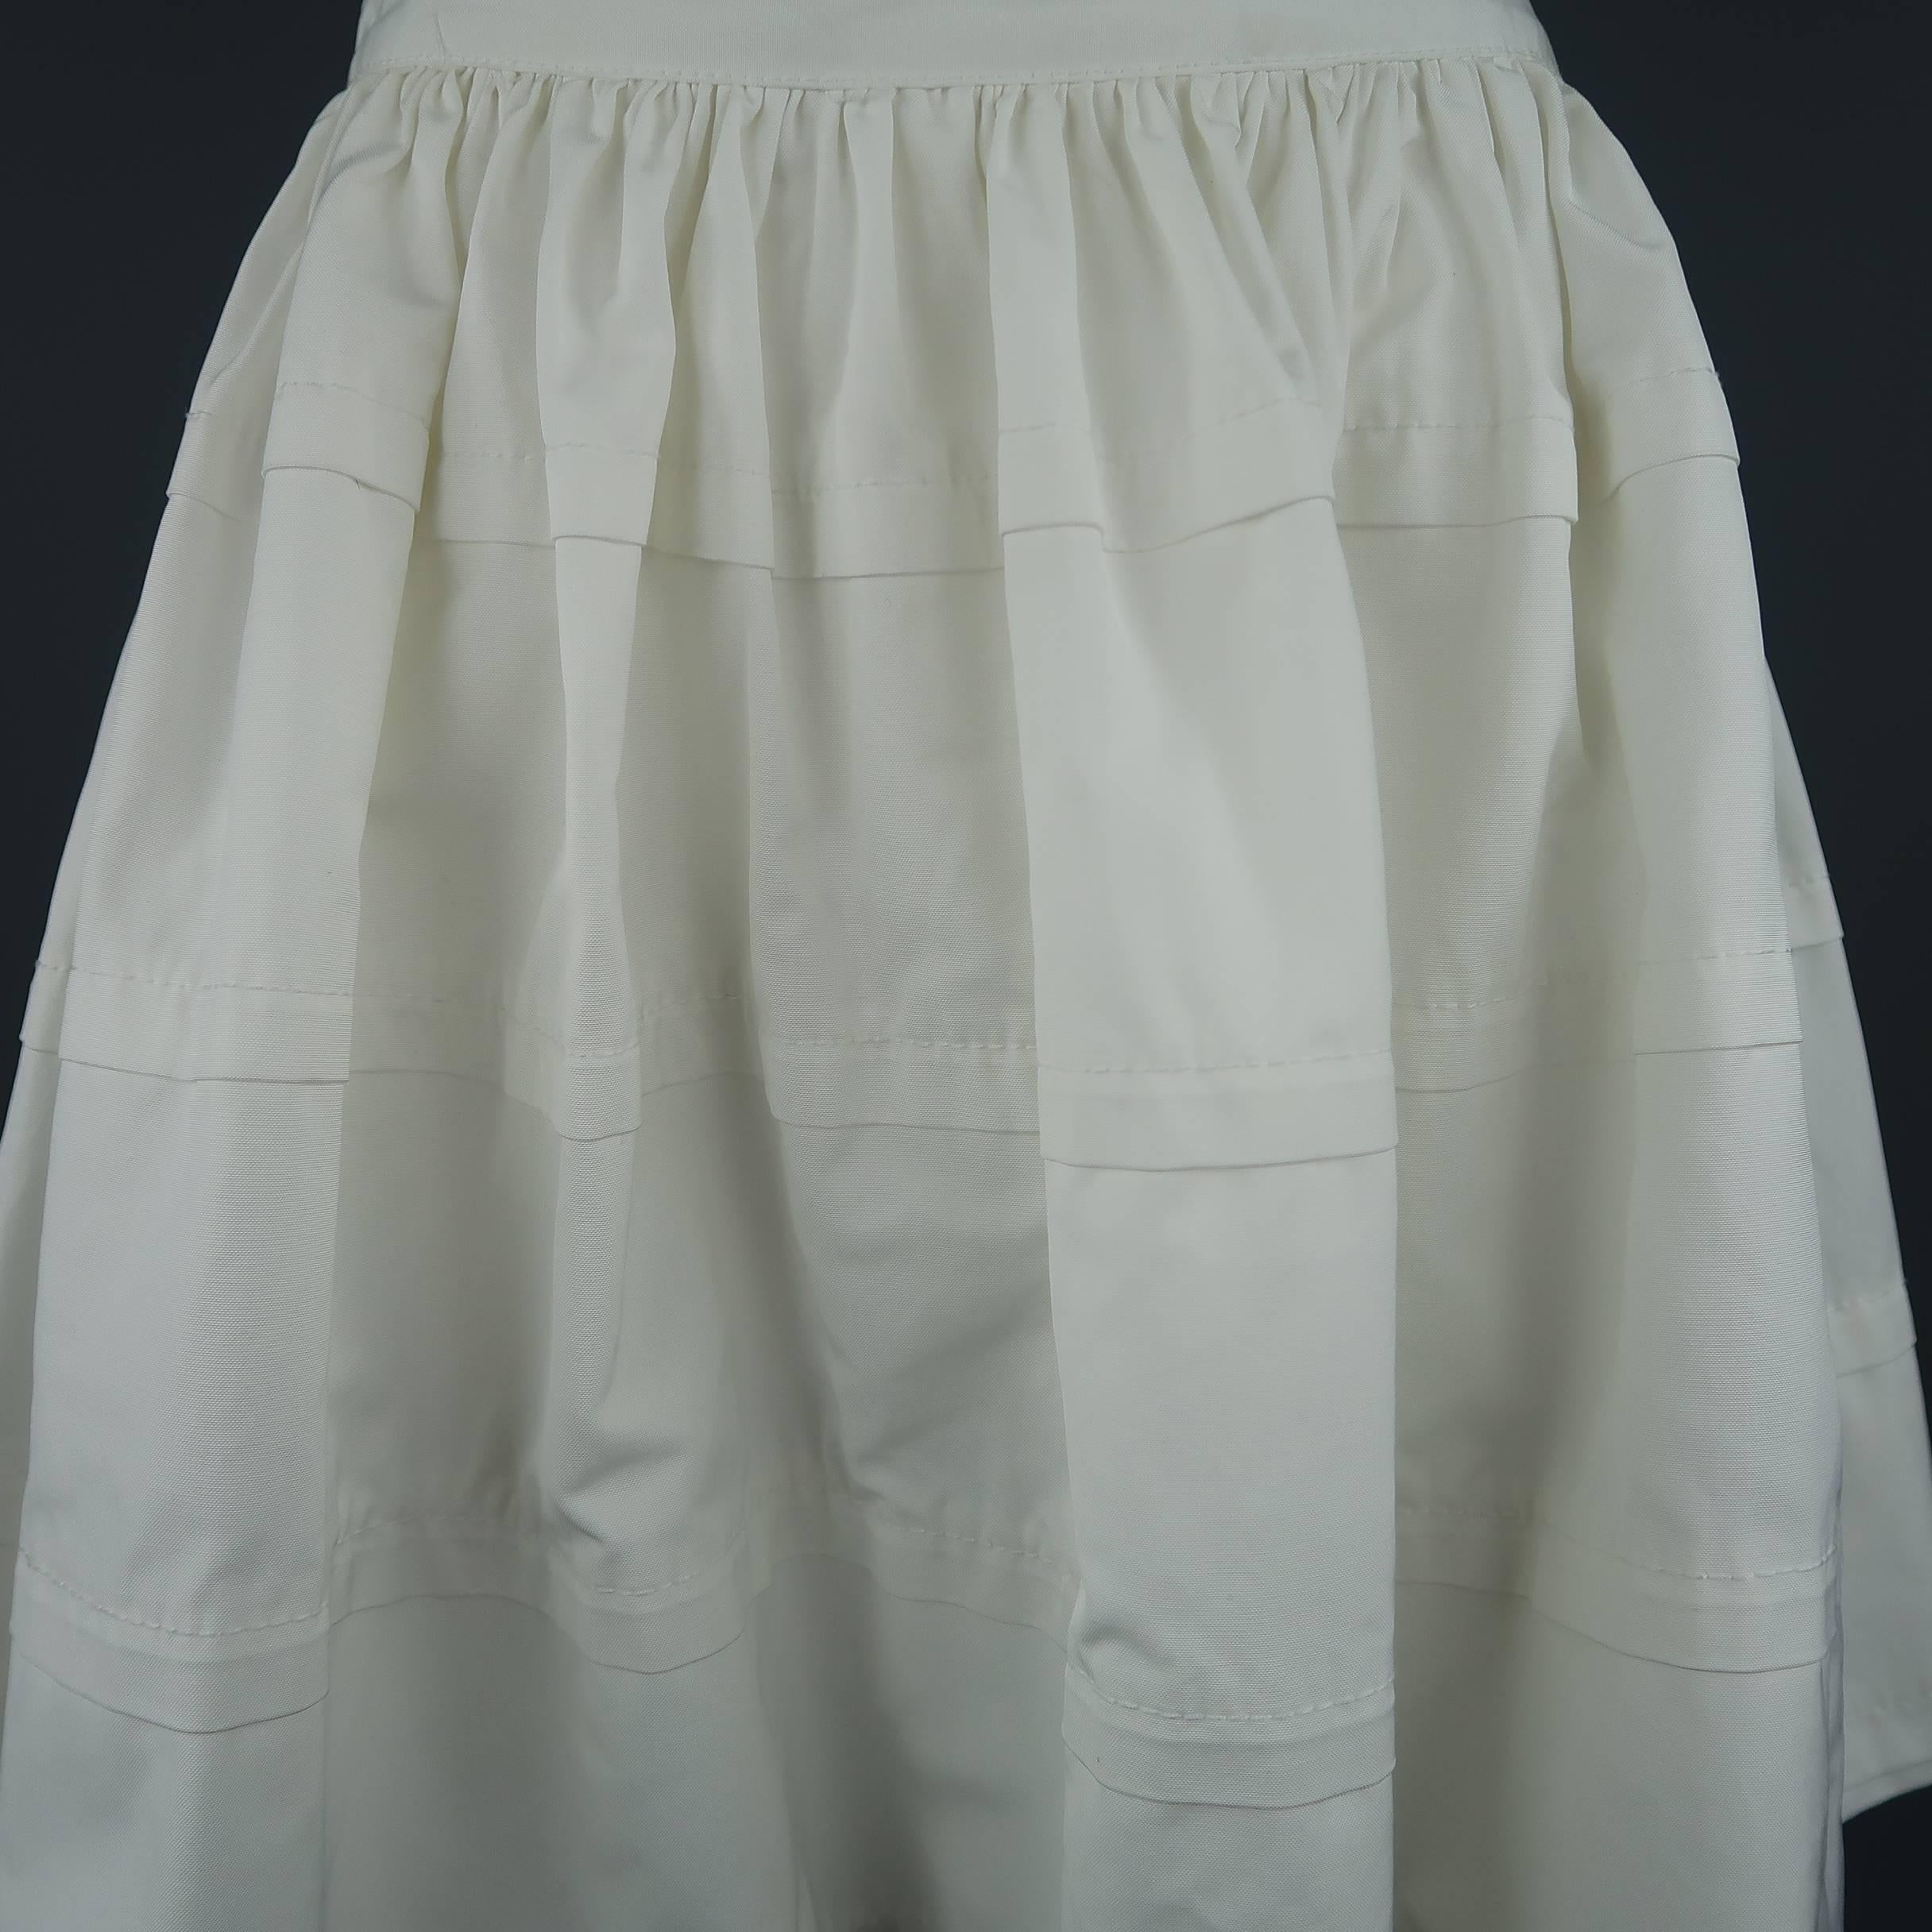 5a70b6bc1f5a REDValentino White Cotton Blend Canvas Gathered Circle Mini Skirt For Sale  at 1stdibs